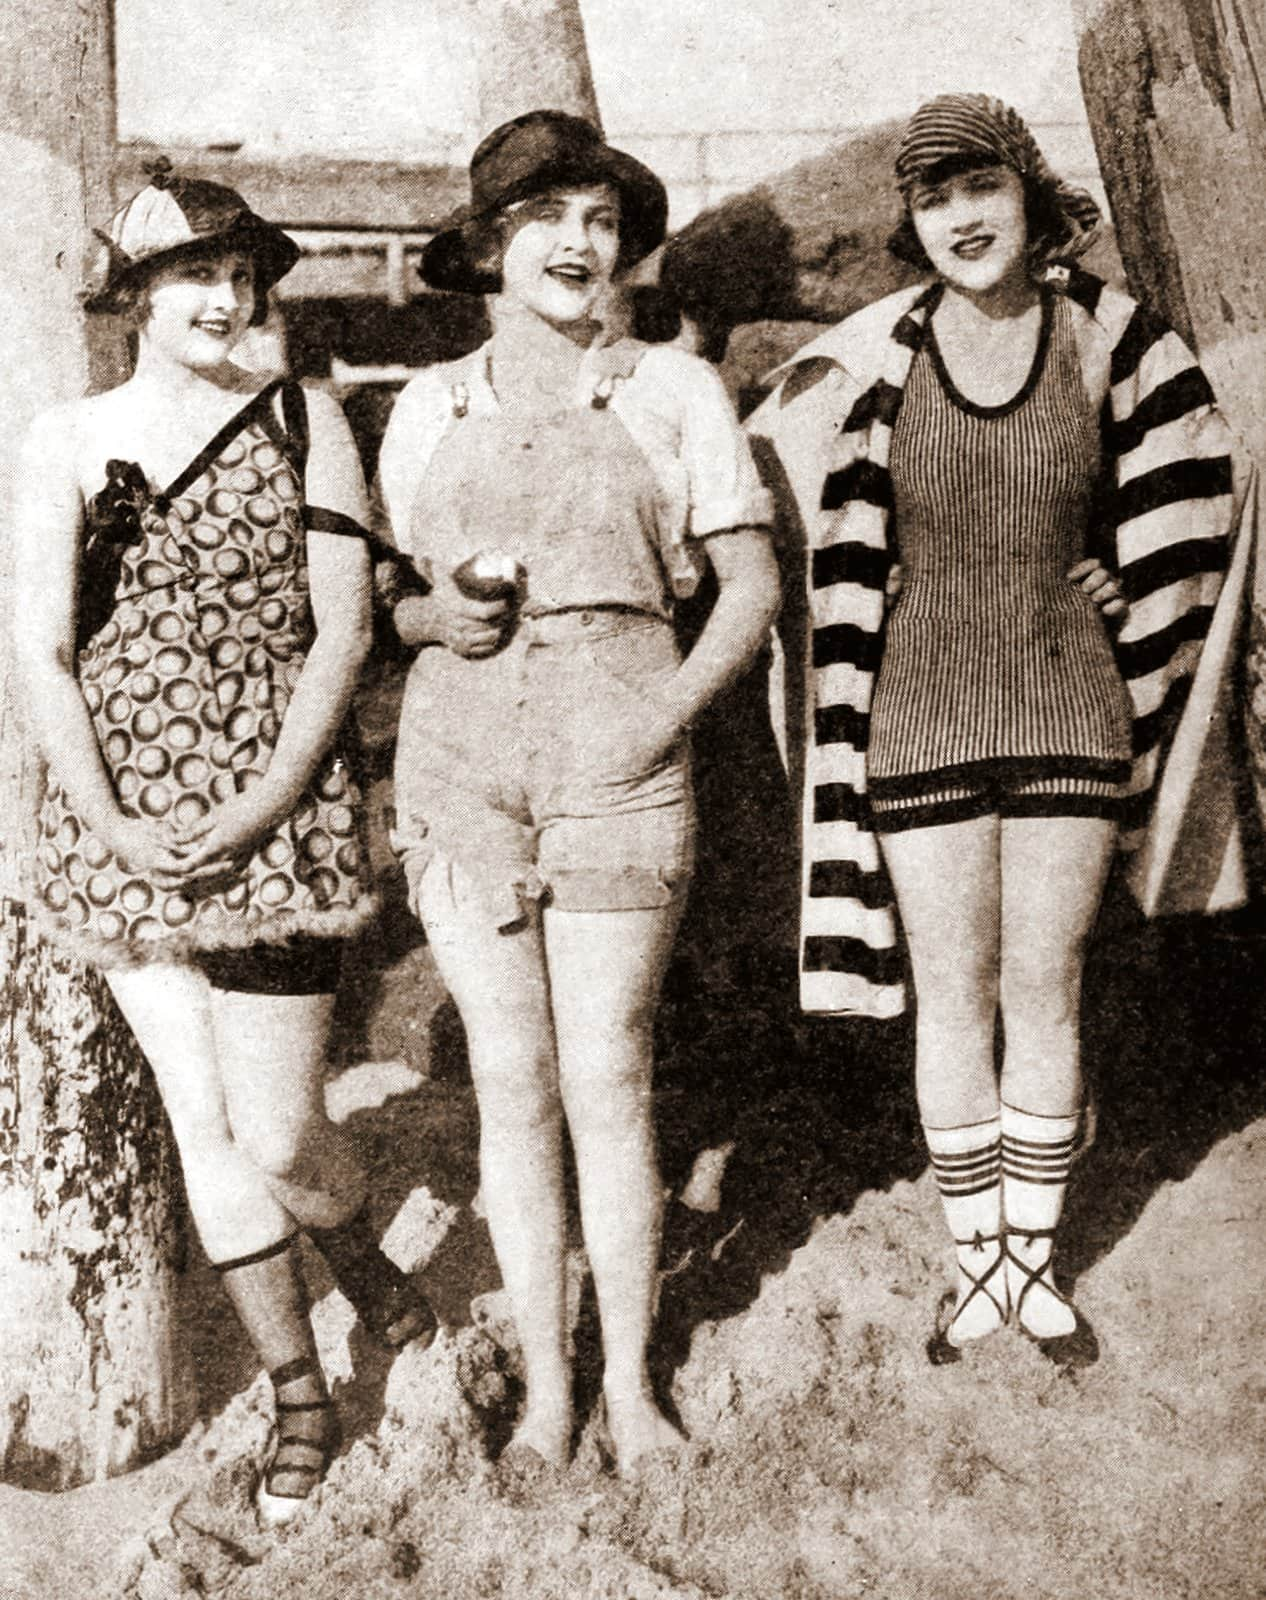 Vintage women in swimsuits (1924)